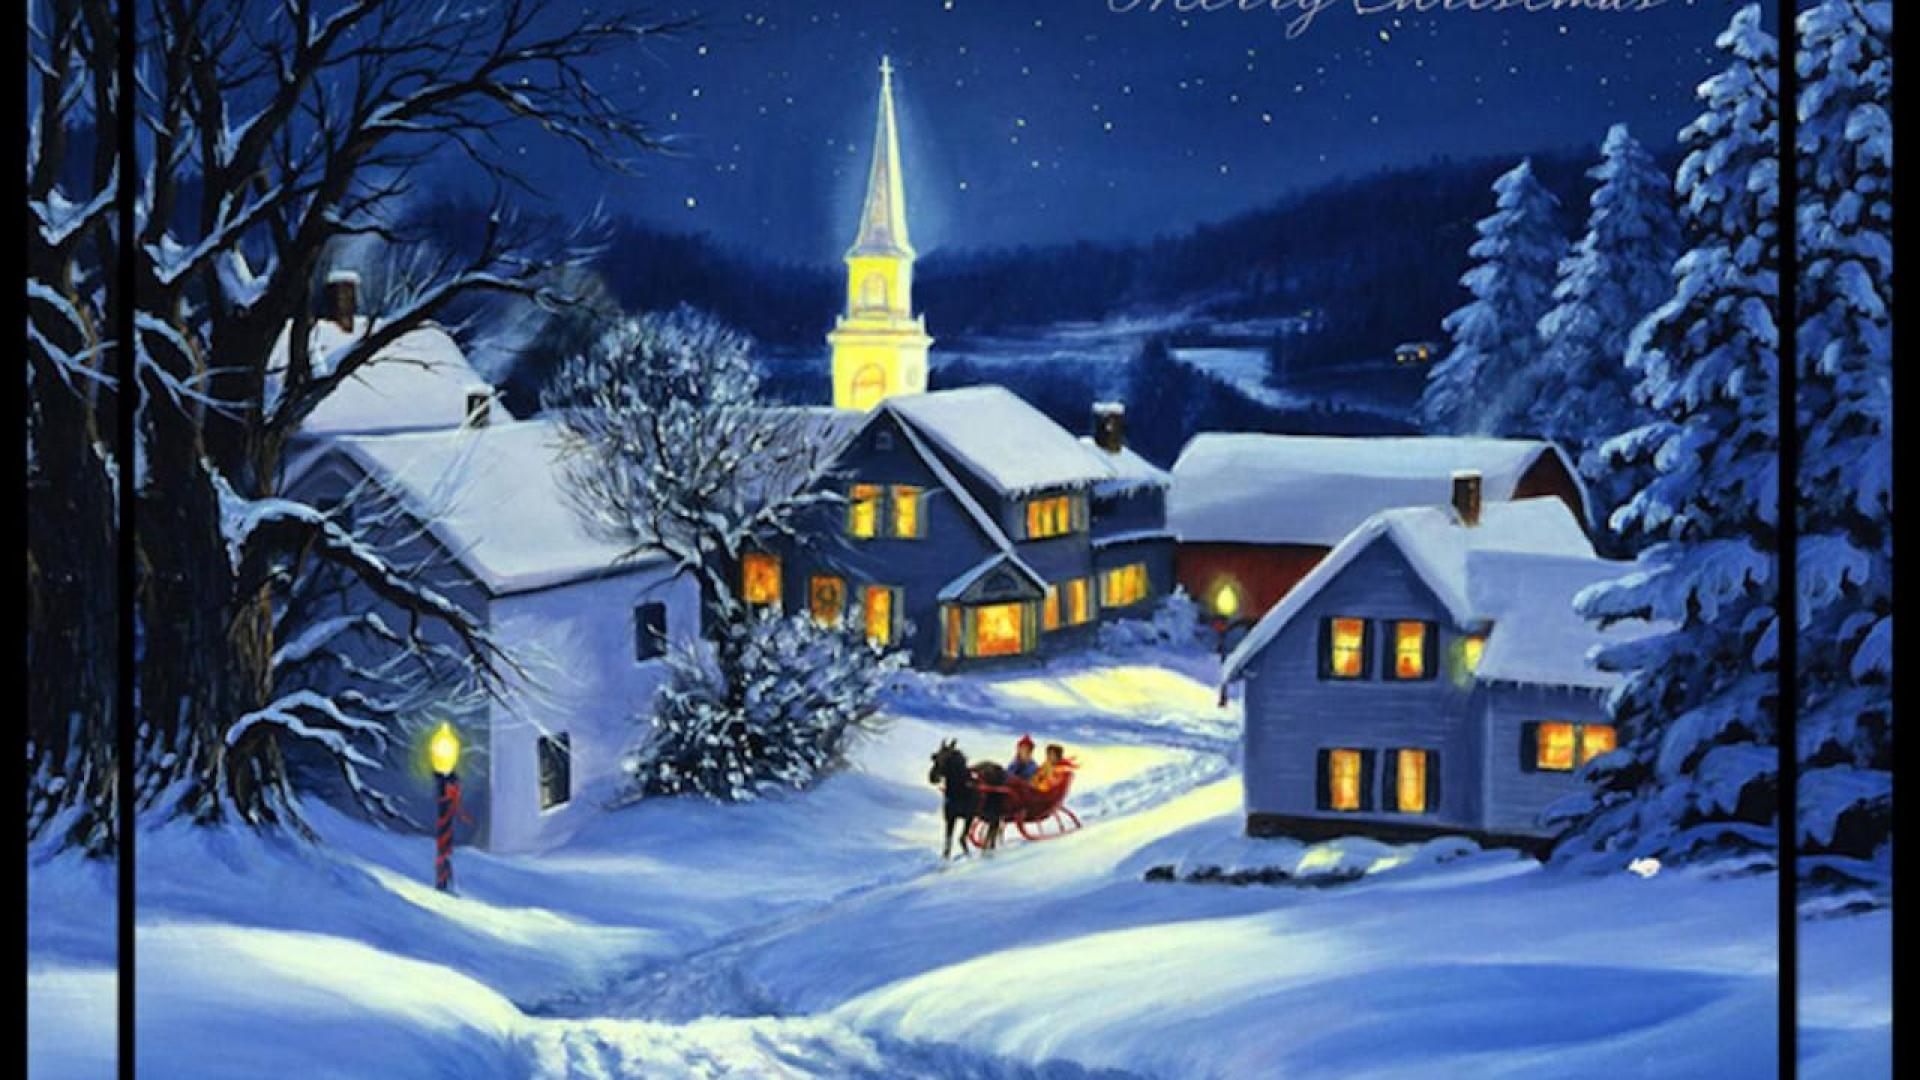 The Night Before Christmas Wallpaper Wallpapersafari